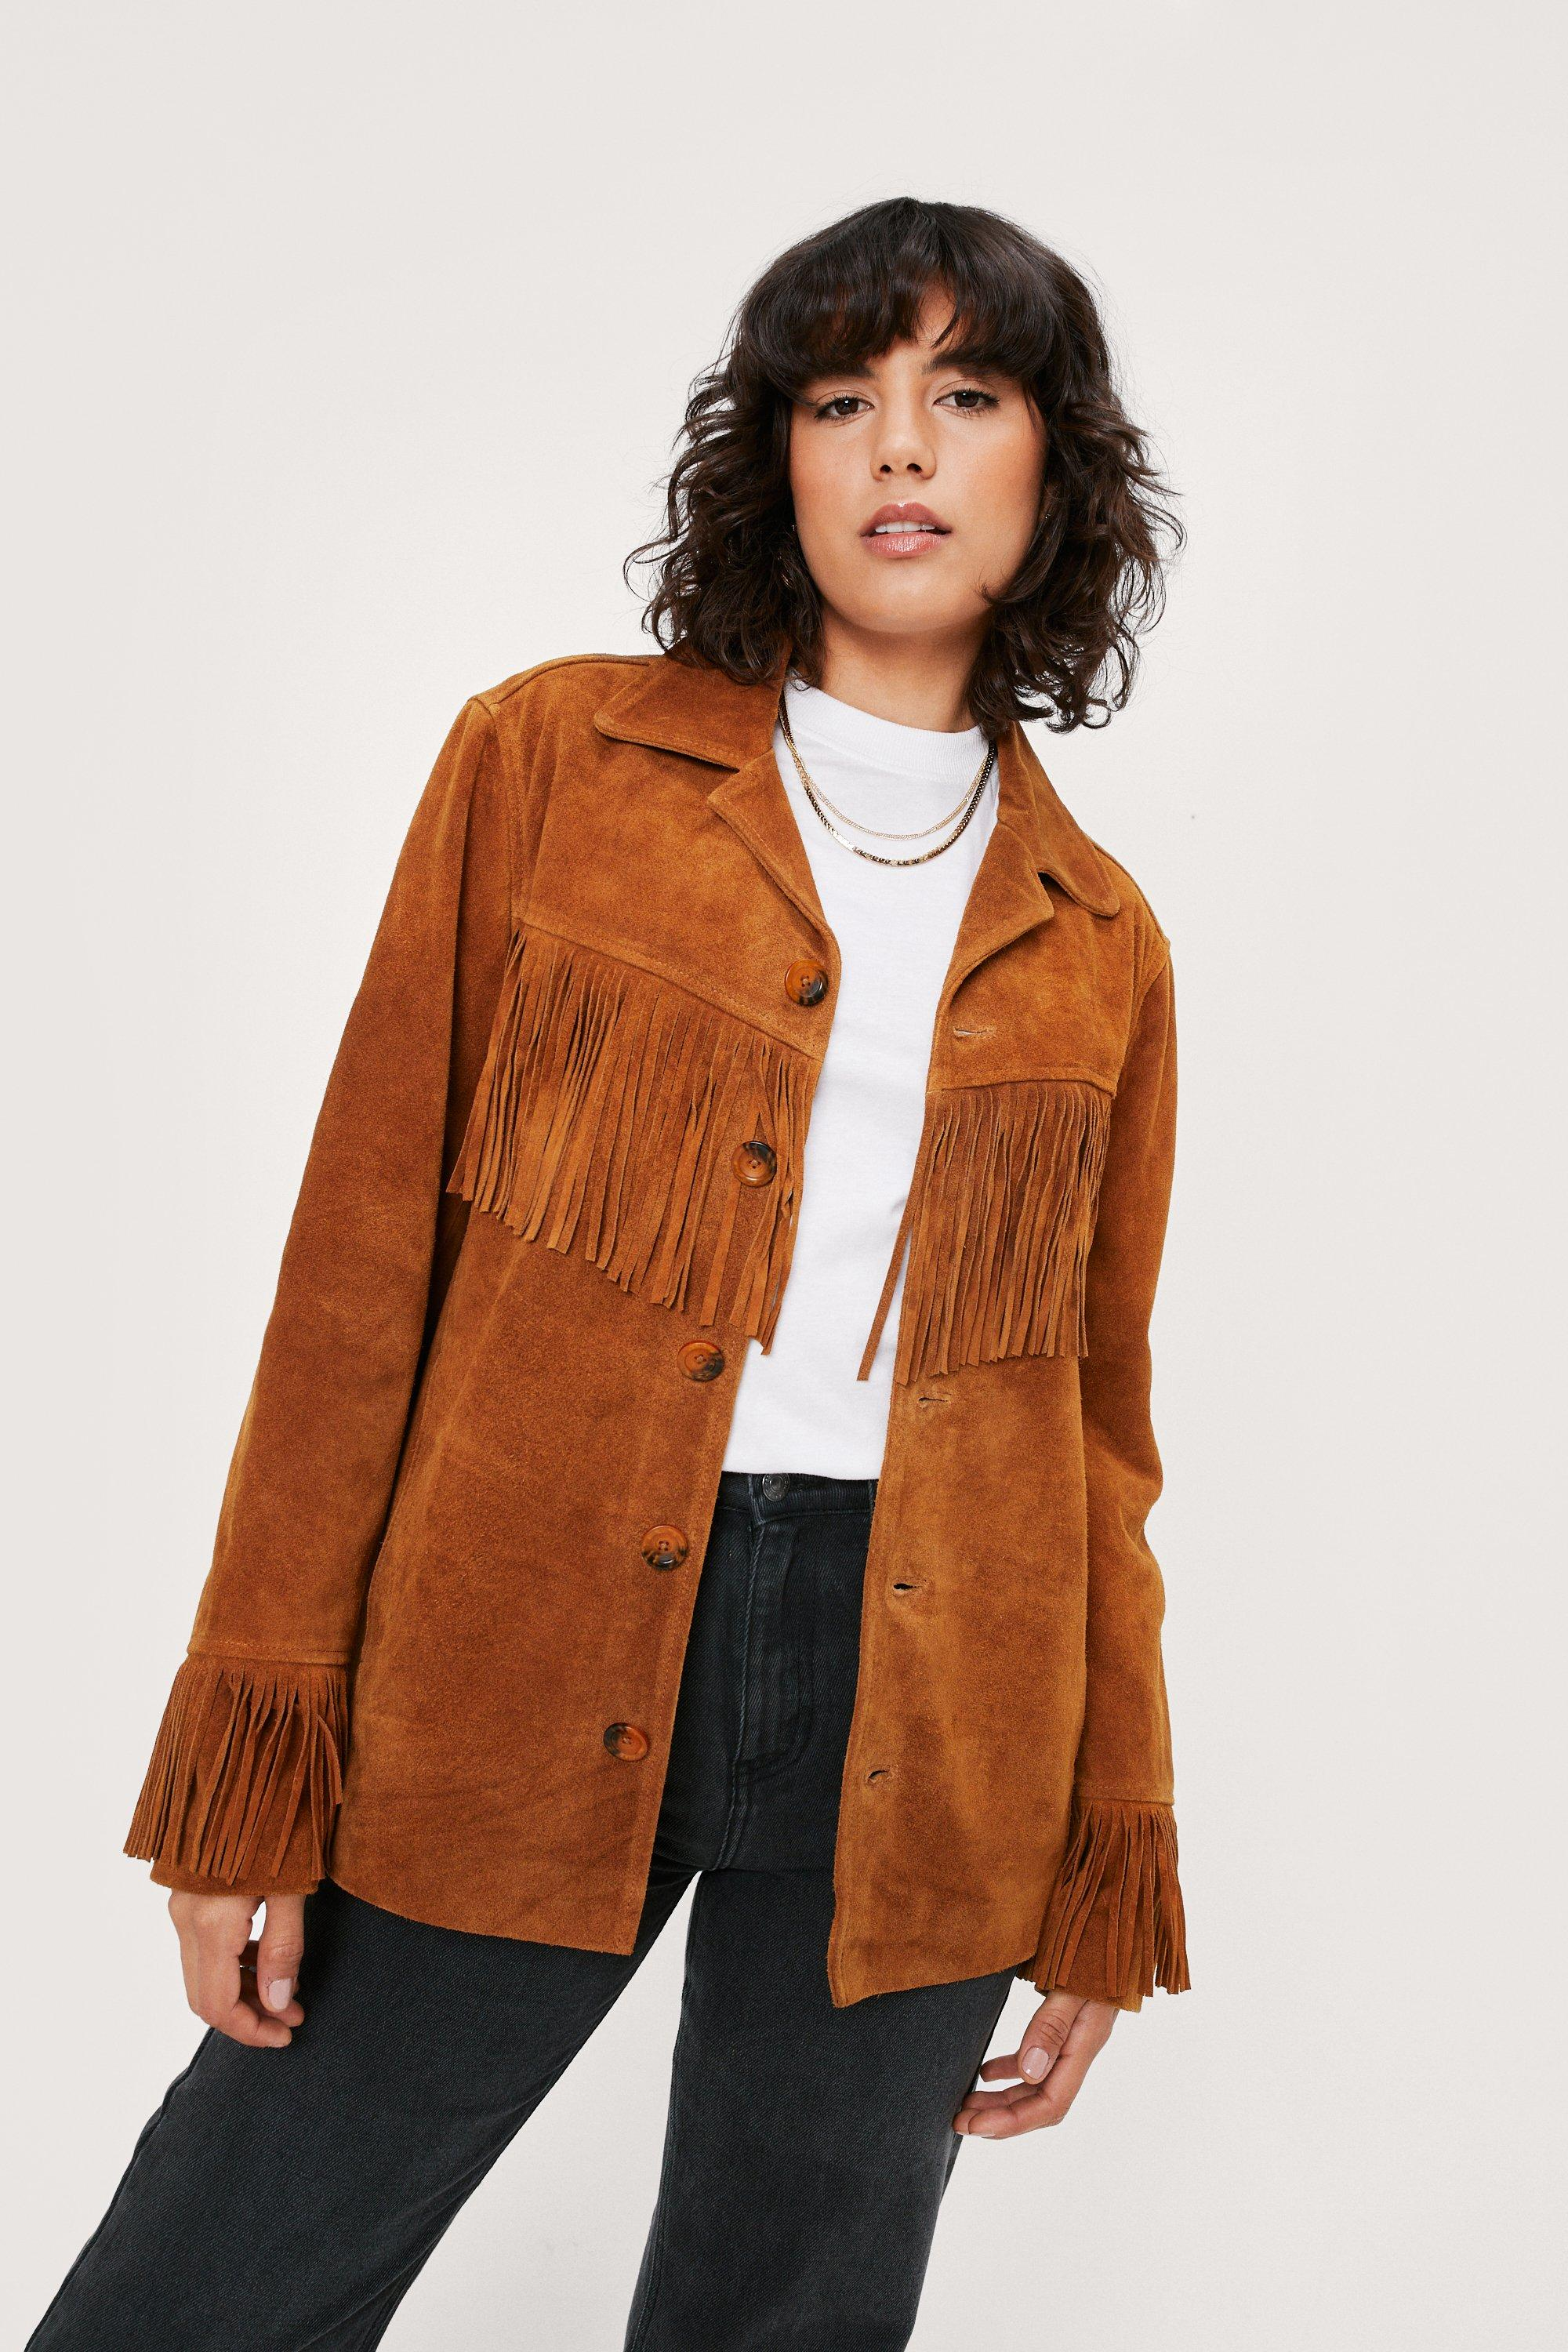 70s Clothes | Hippie Clothes & Outfits Womens Real Suede Oversized Fringe Jacket - Tan - 10 $153.00 AT vintagedancer.com